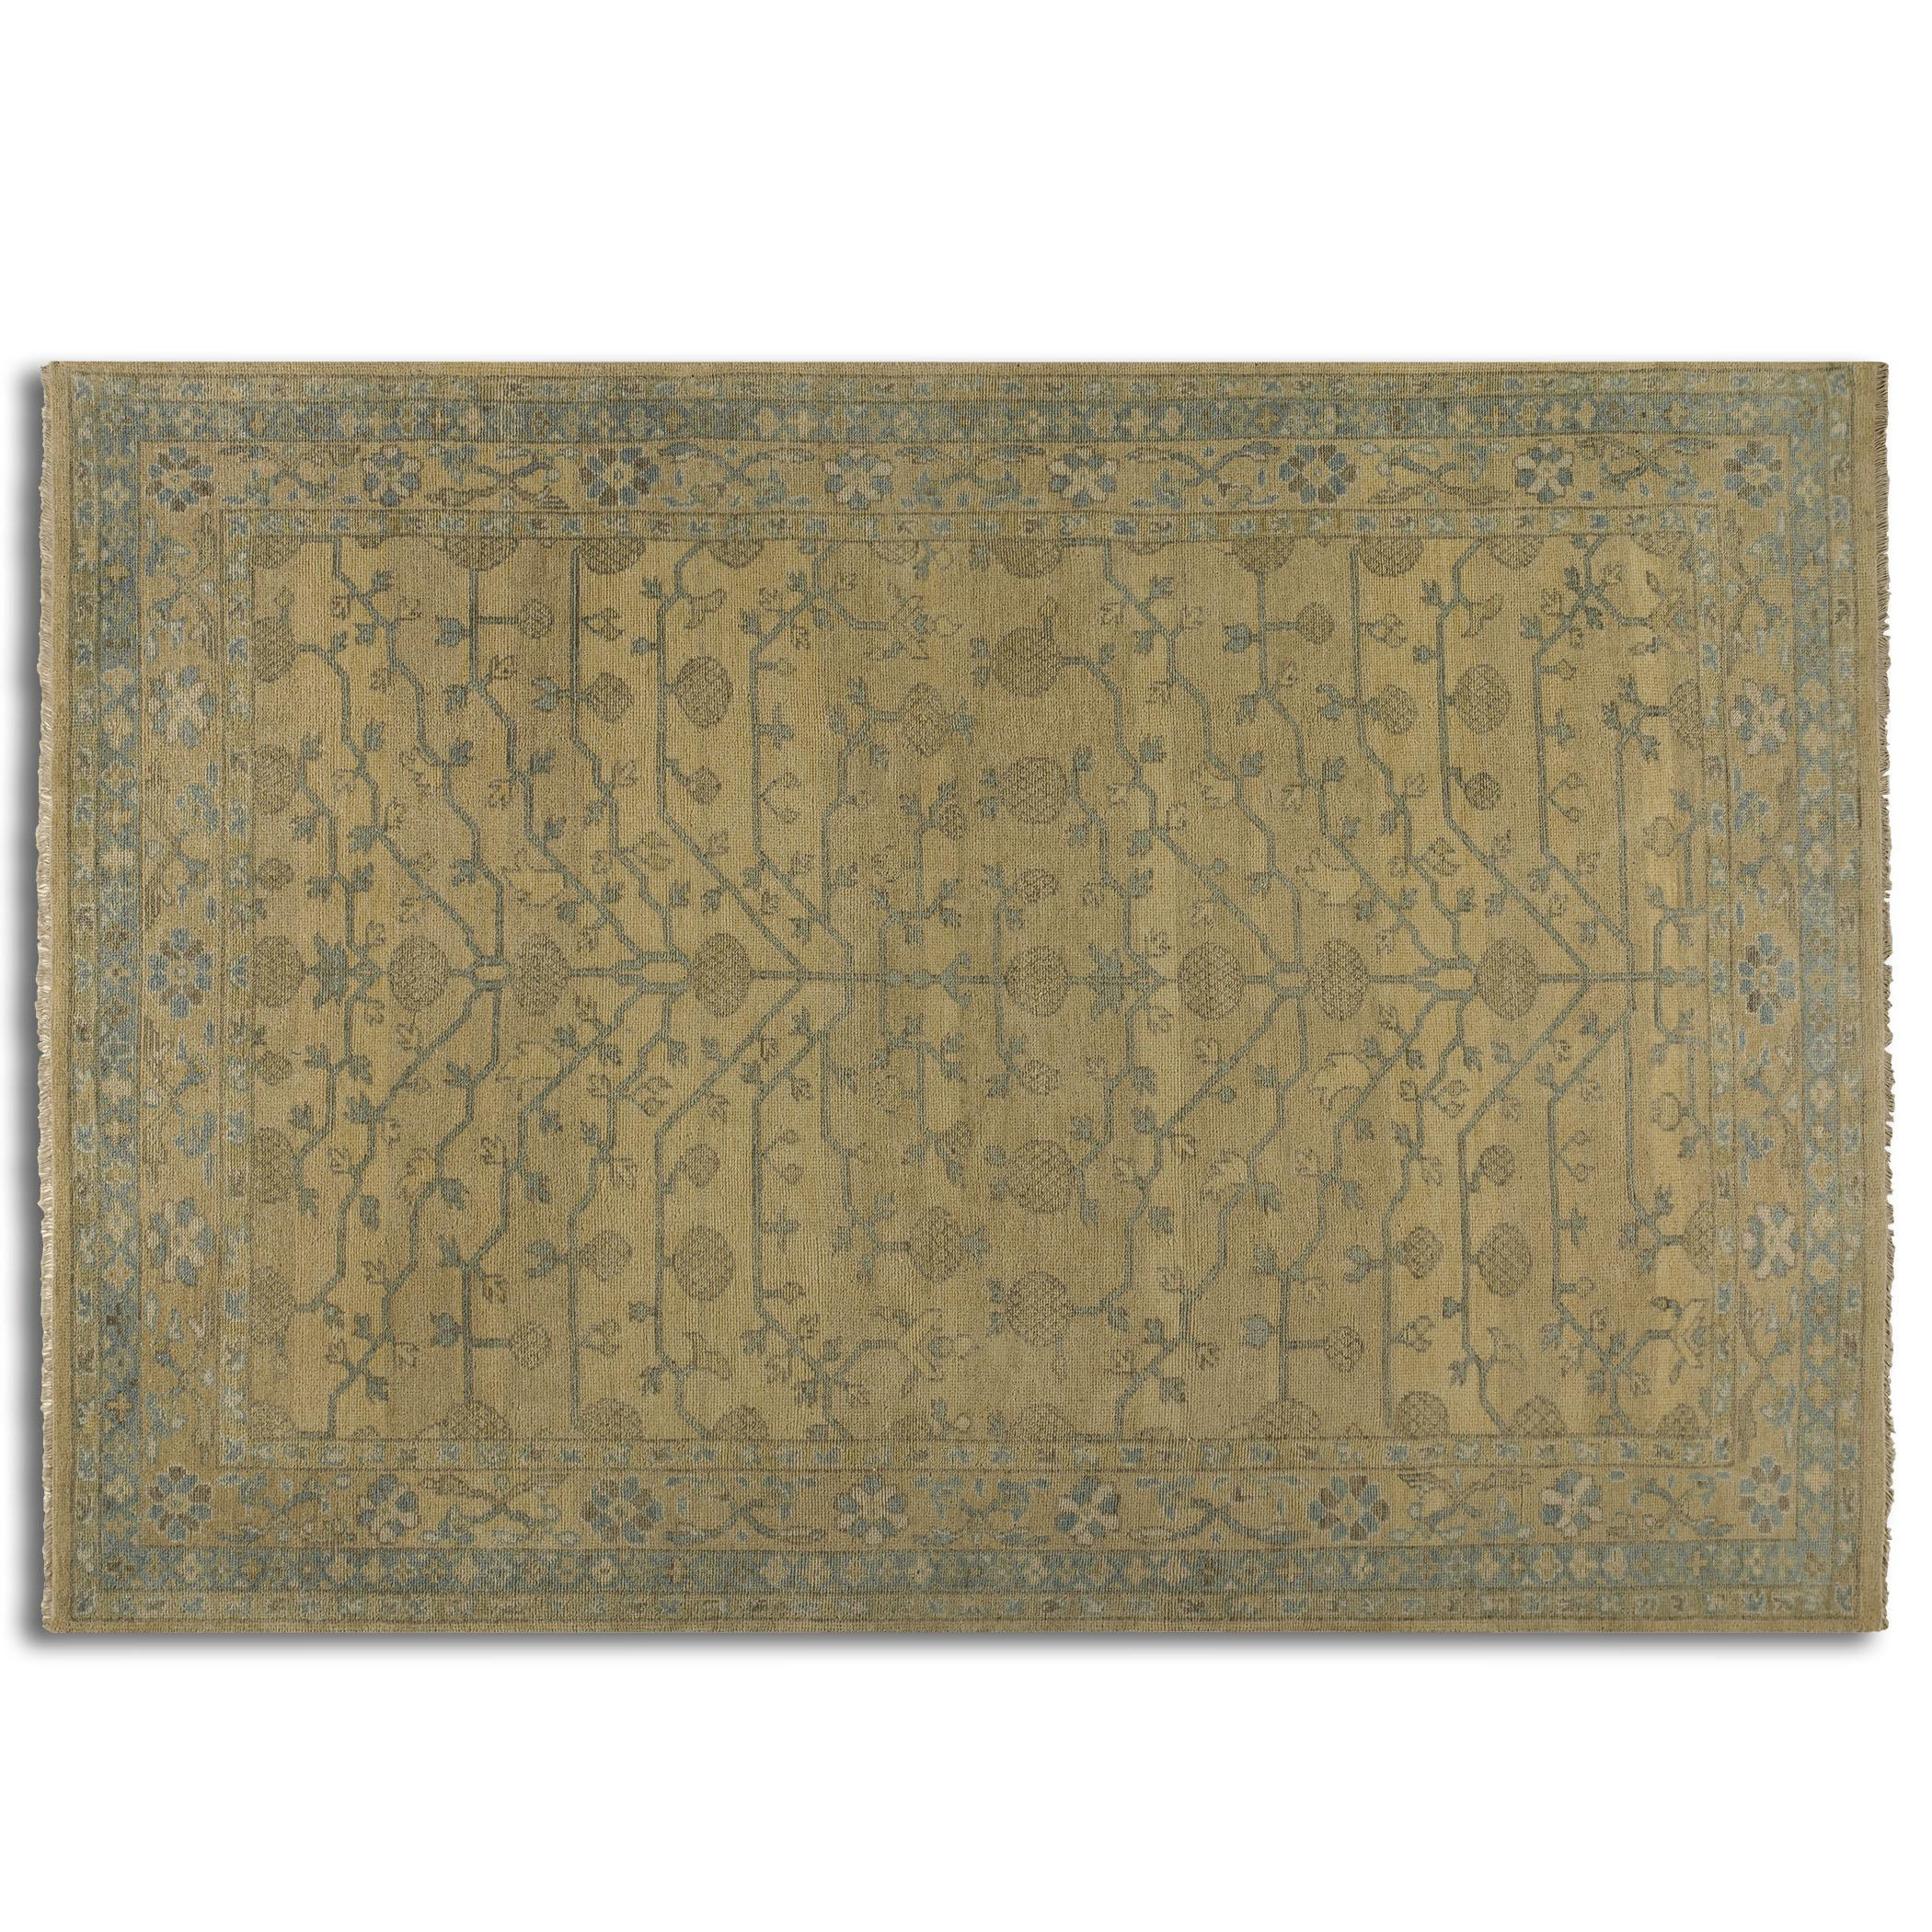 Uttermost Rugs Bankura 6 X 9 Rug - Pale Gold - Item Number: 70018-6